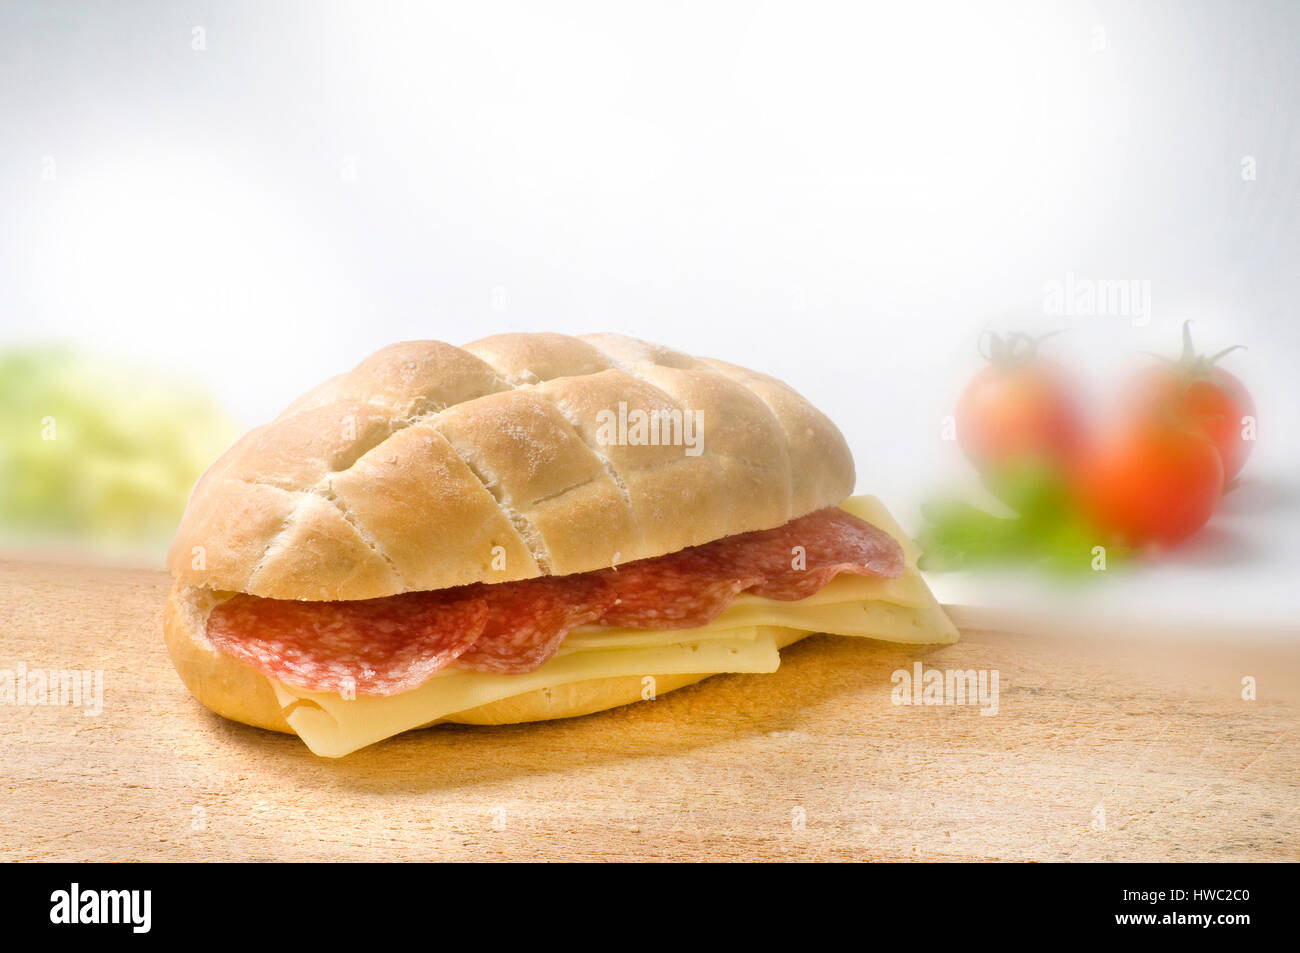 inviting sandwich with salami and cheese on wooden desk with blurred foggy tomatos and lettuce background - Stock Image